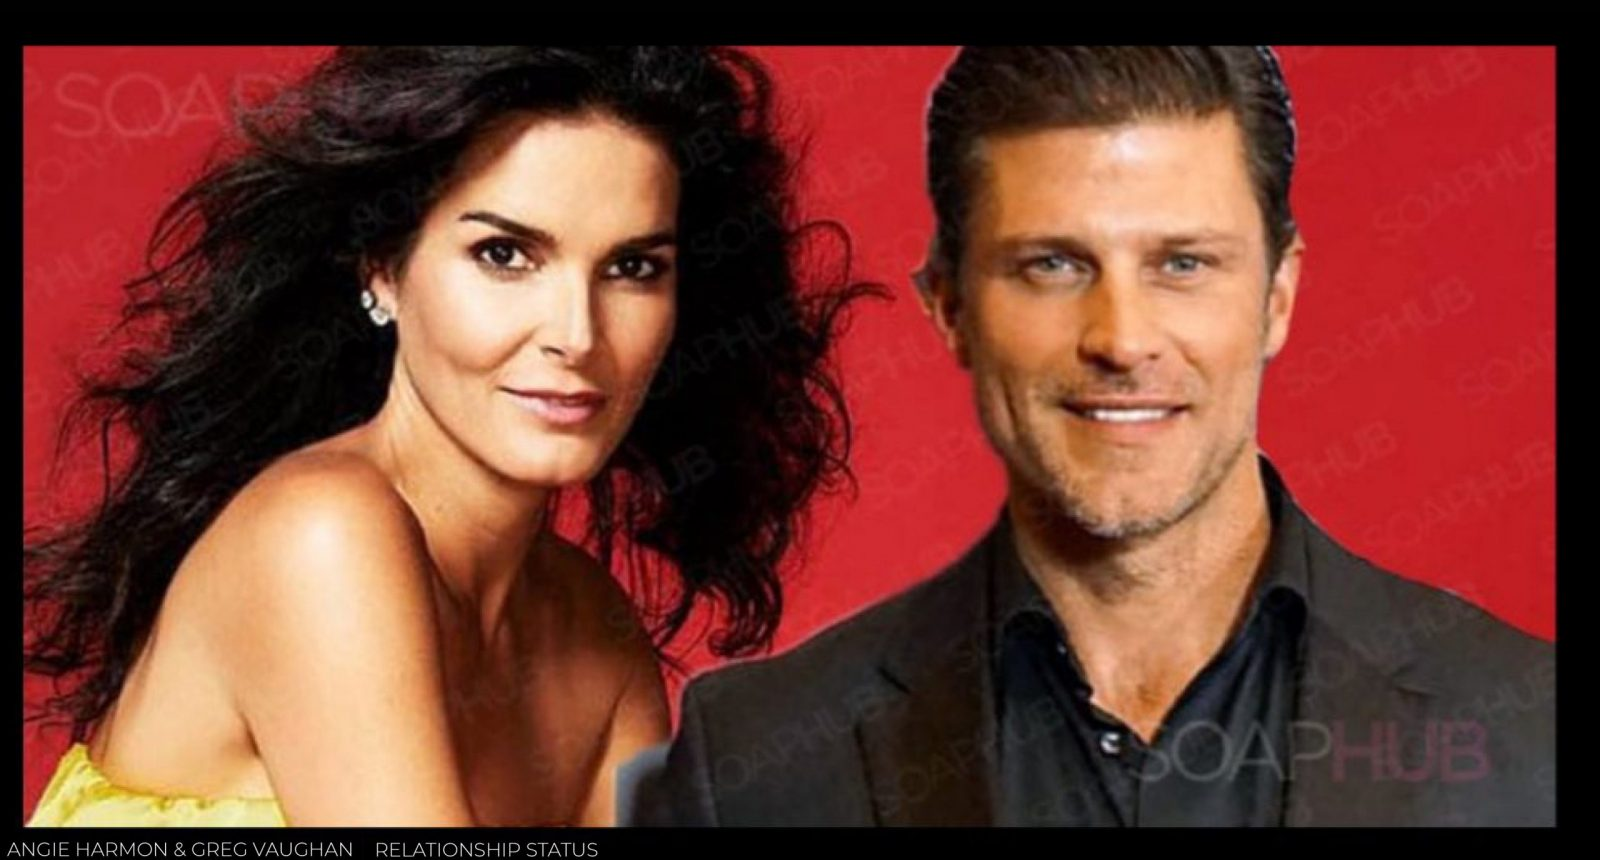 angie-harmon-and-greg-vaughan-split:-what-happened-between-the-two?